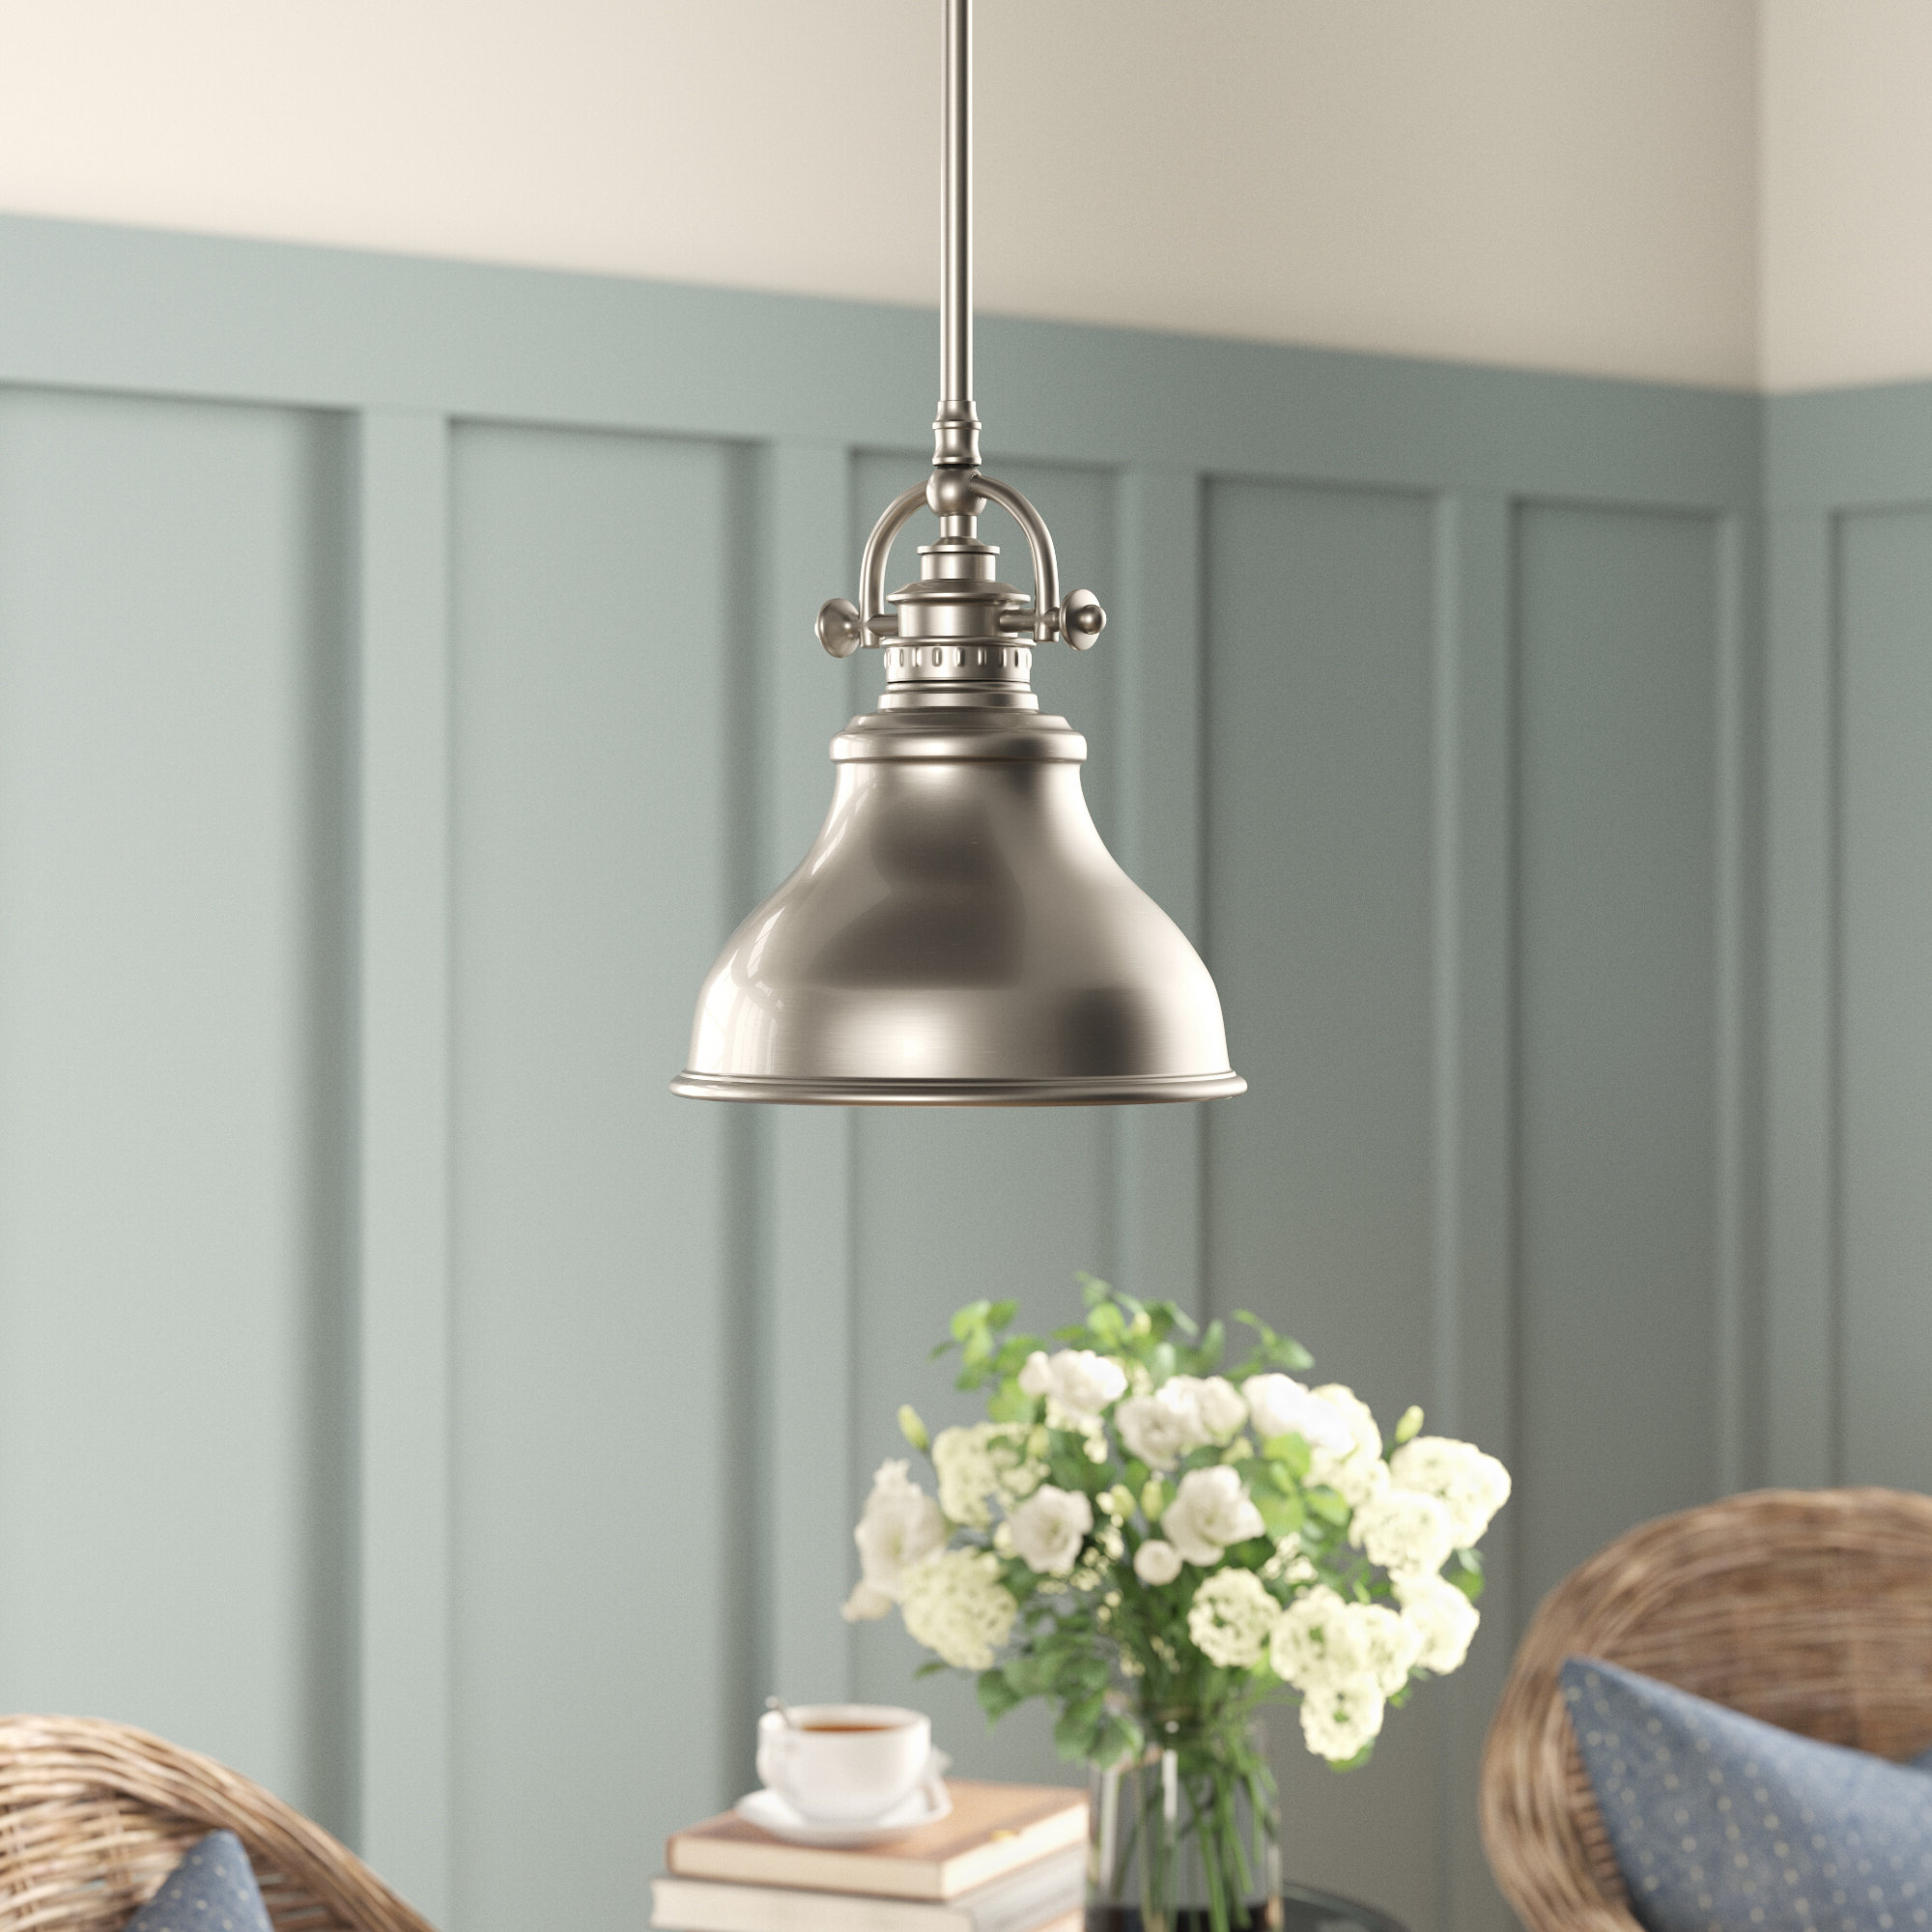 Trendy Macon 1 Light Single Dome Pendants Pertaining To Mueller 1 Light Single Dome Pendant (View 19 of 20)